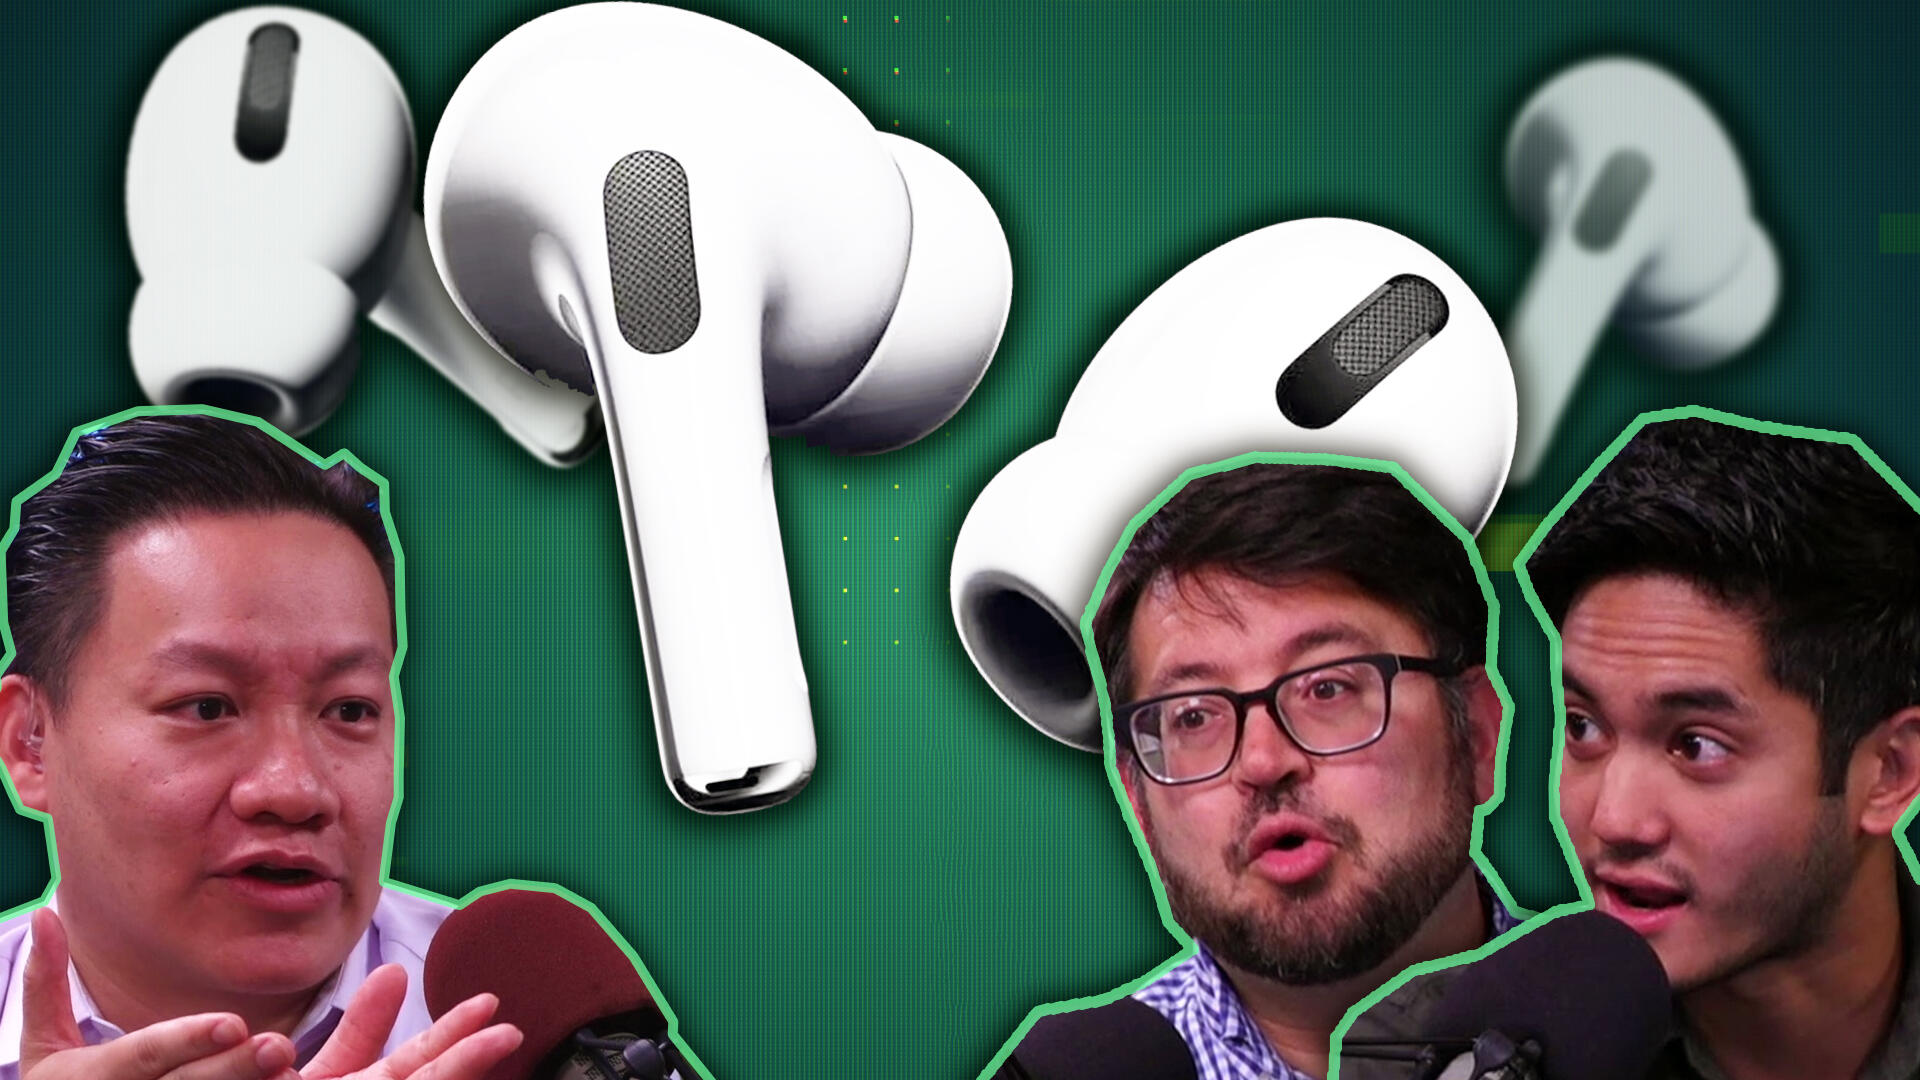 Video: AirPods Pro finally ditches Apple's one-size-fits-all approach (The Daily Charge, 10/29/2019)